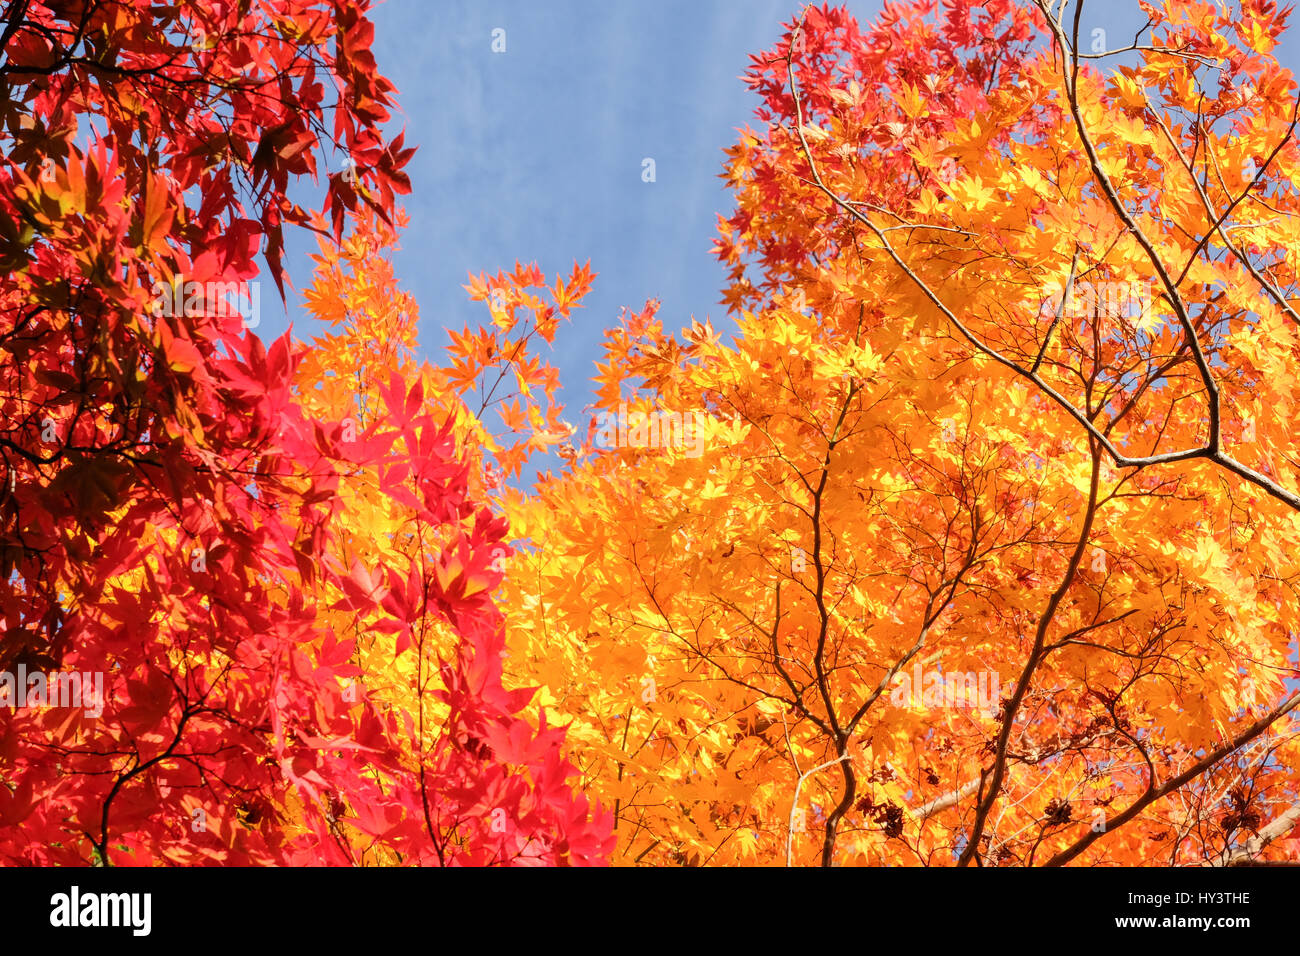 Autumn colour trees with blue sky in Kyoto, Japan - Stock Image